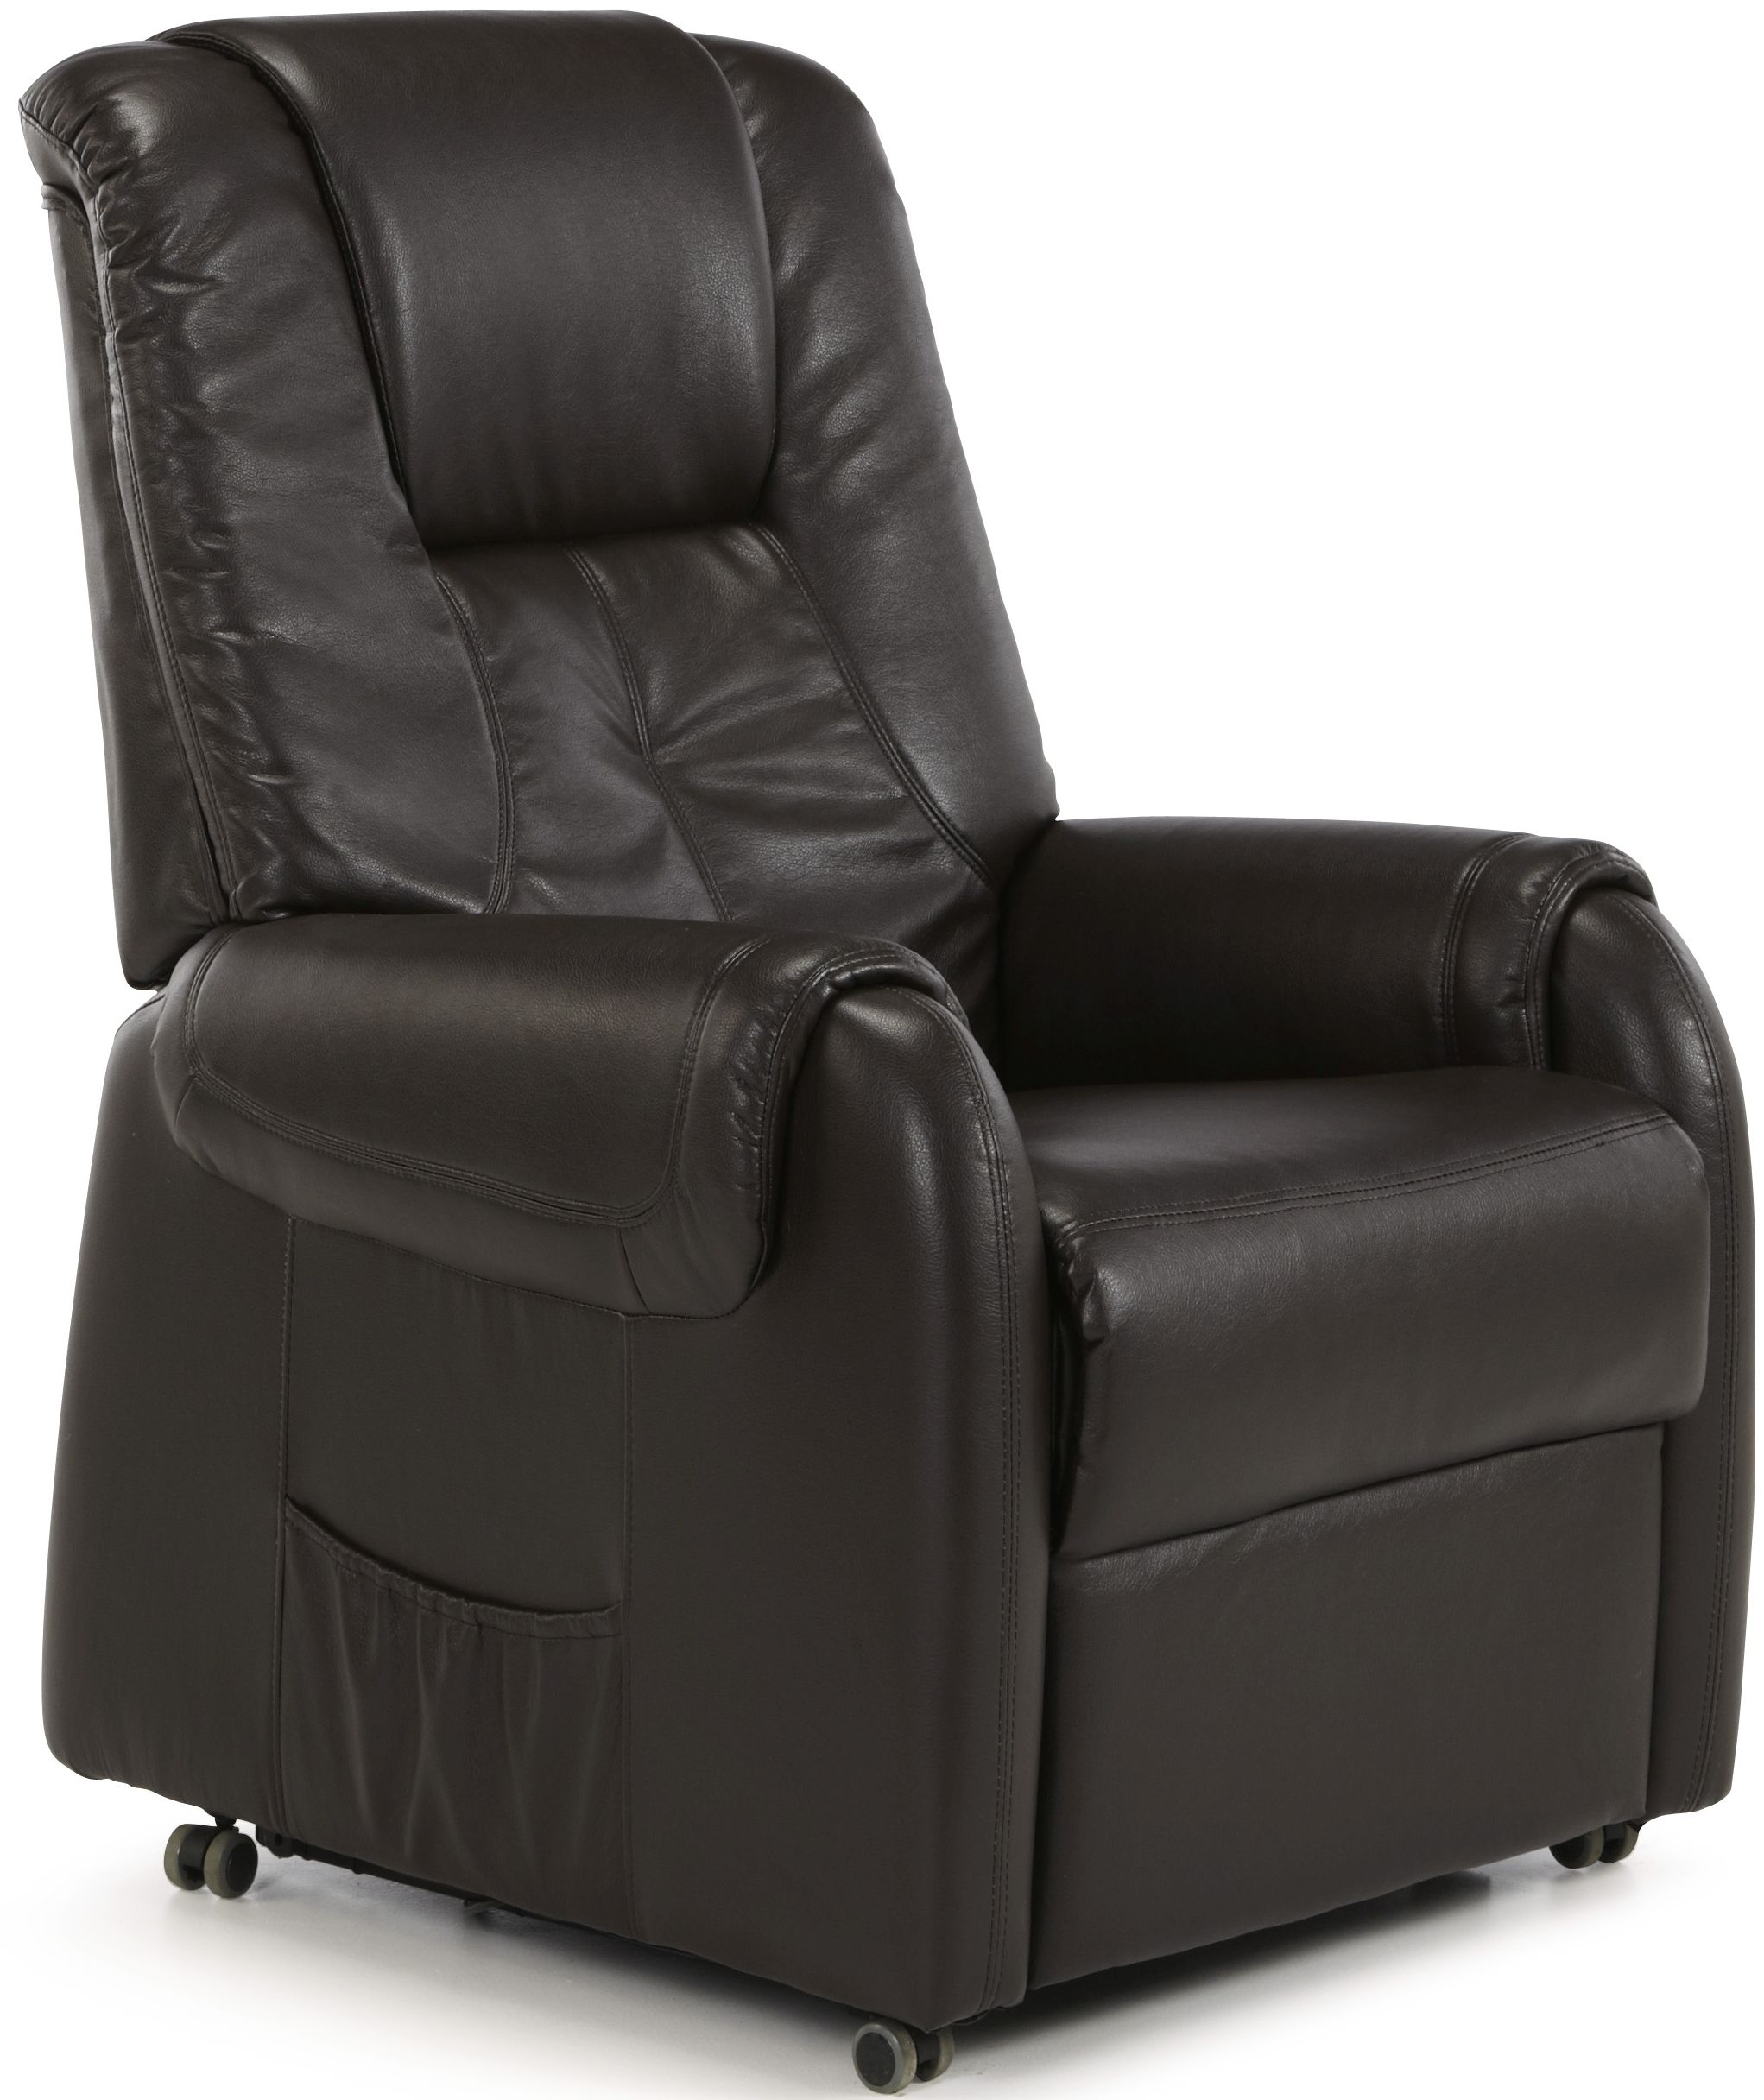 Serene Alta Brown Faux Leather Recliner Chair